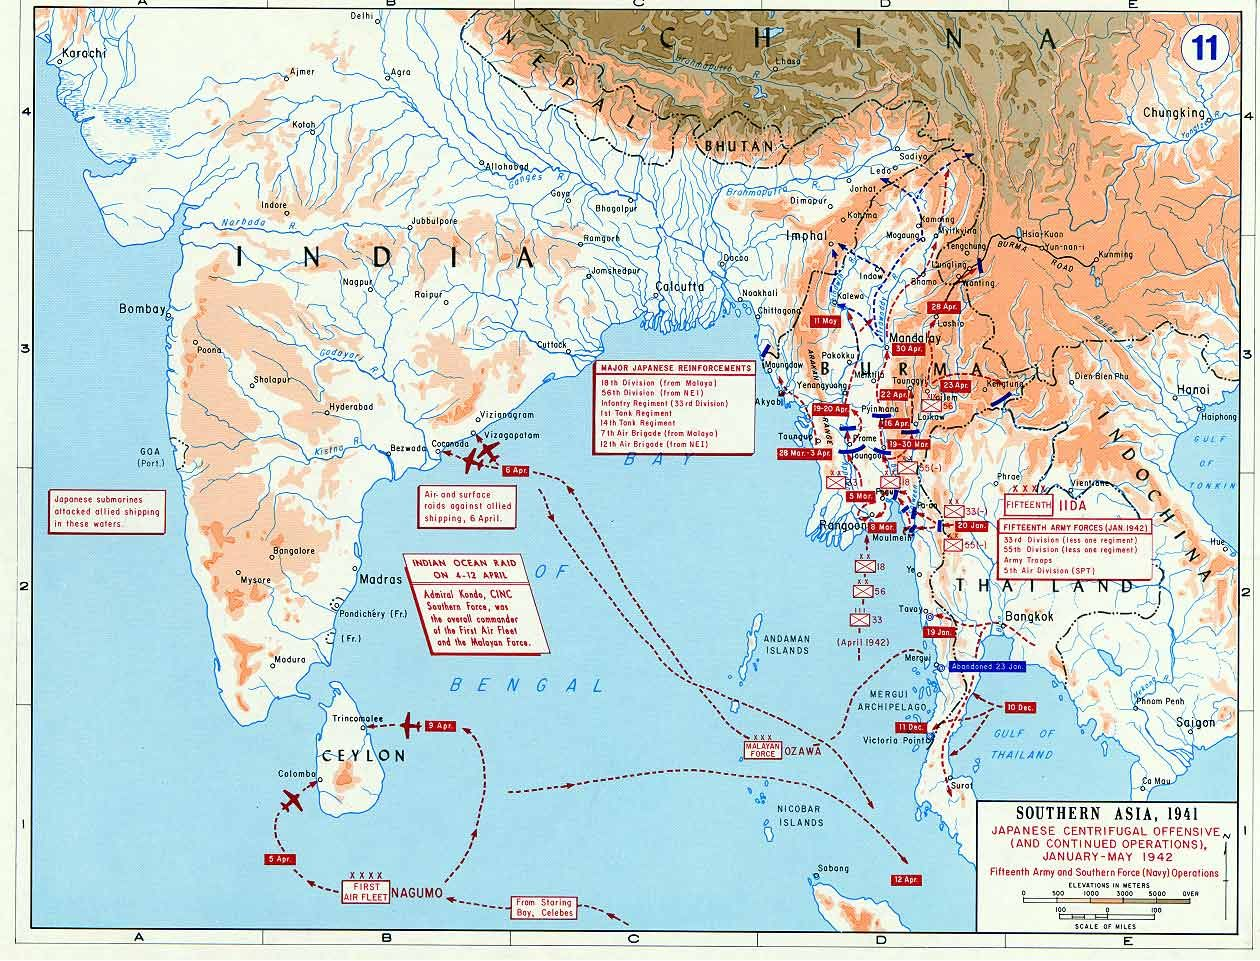 Map Map Showing Japanese Offensives In Malaya Burma And The - Burma clickable map